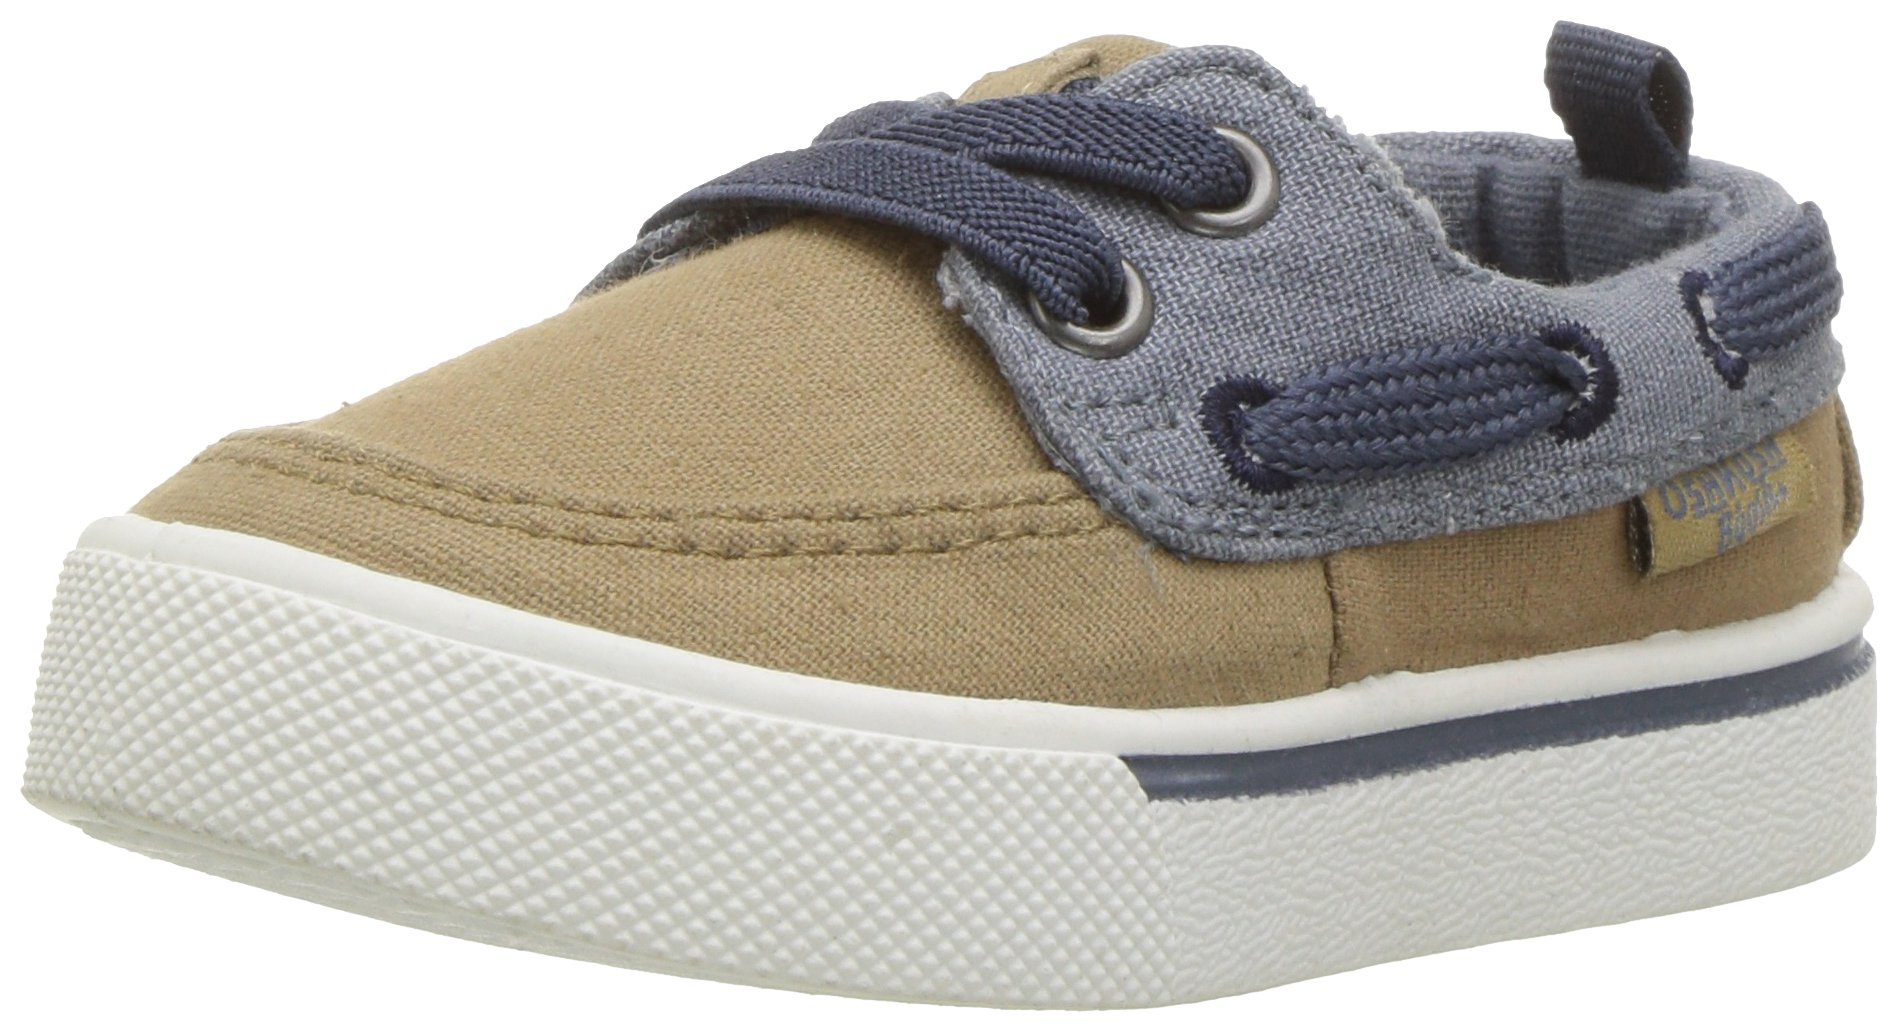 OshKosh B'Gosh Albie Boy's Boat Shoe, Khaki, 12 M US Little Kid by OshKosh B'Gosh (Image #1)